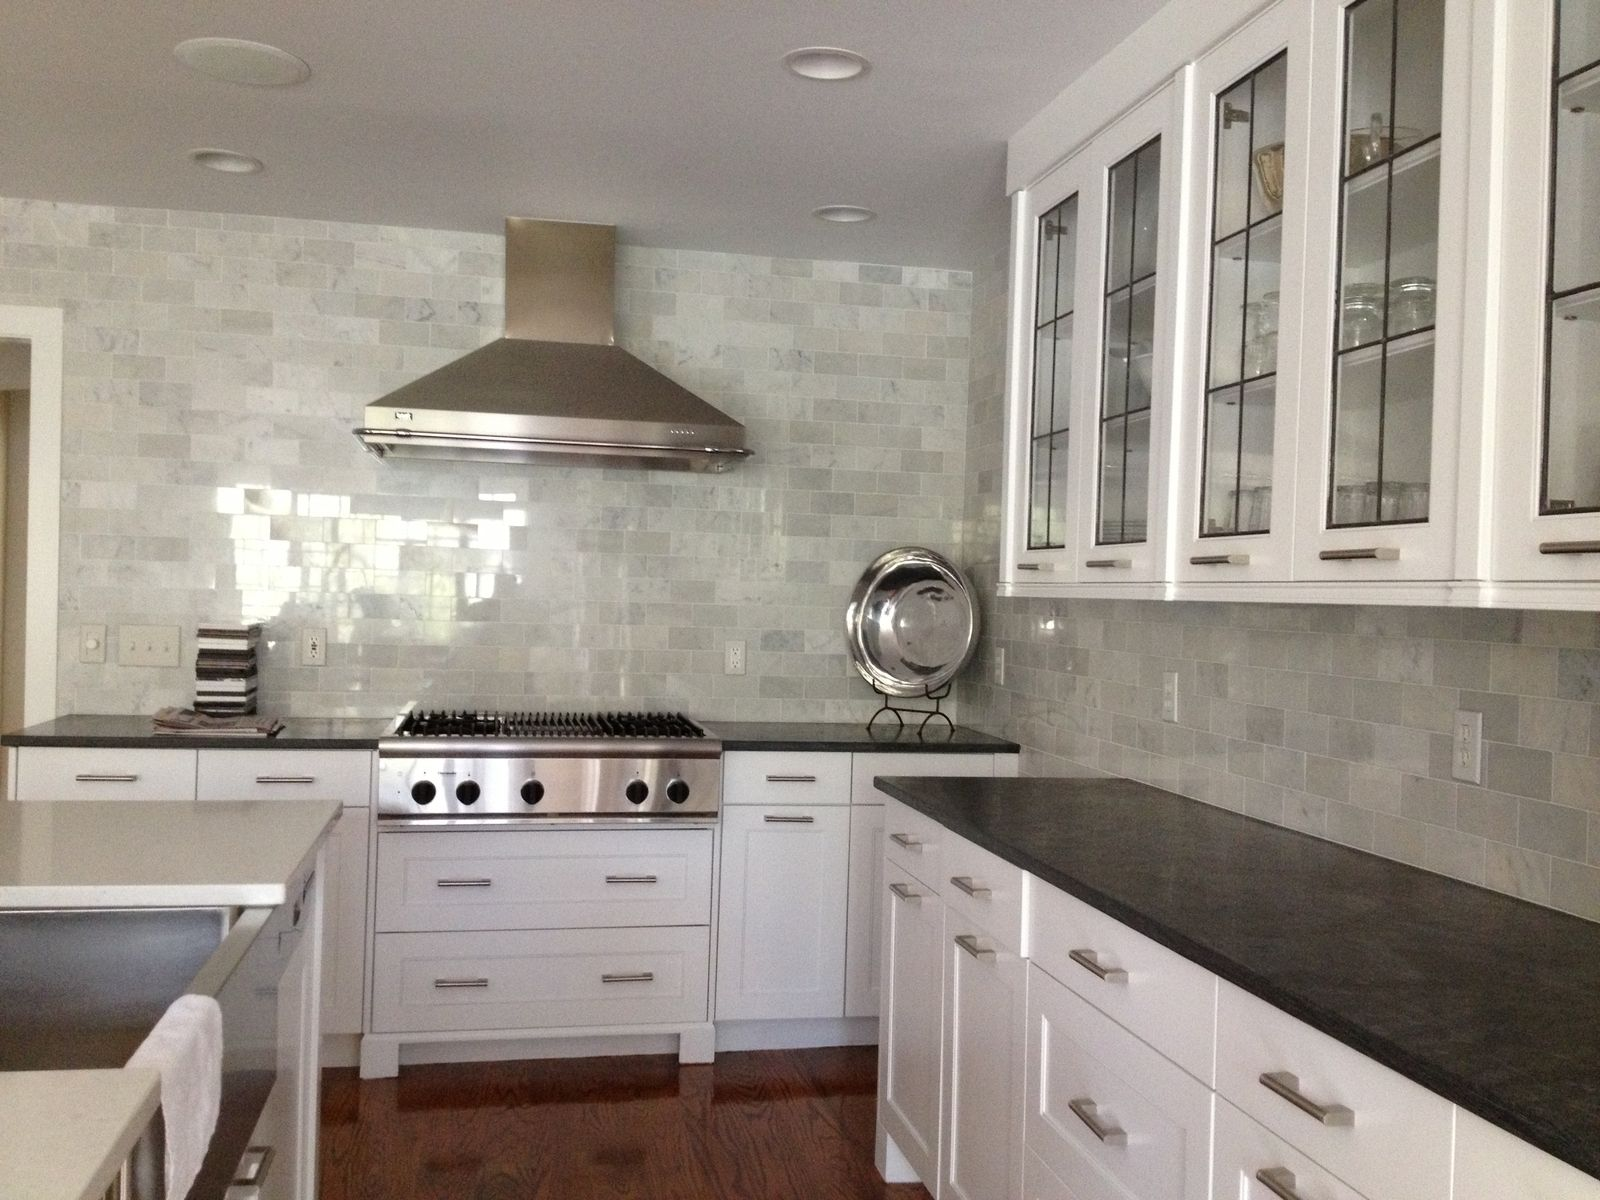 Custom Made Cabinets Handmade Custom Kitchen Cabinets By Summit Homecrafters C